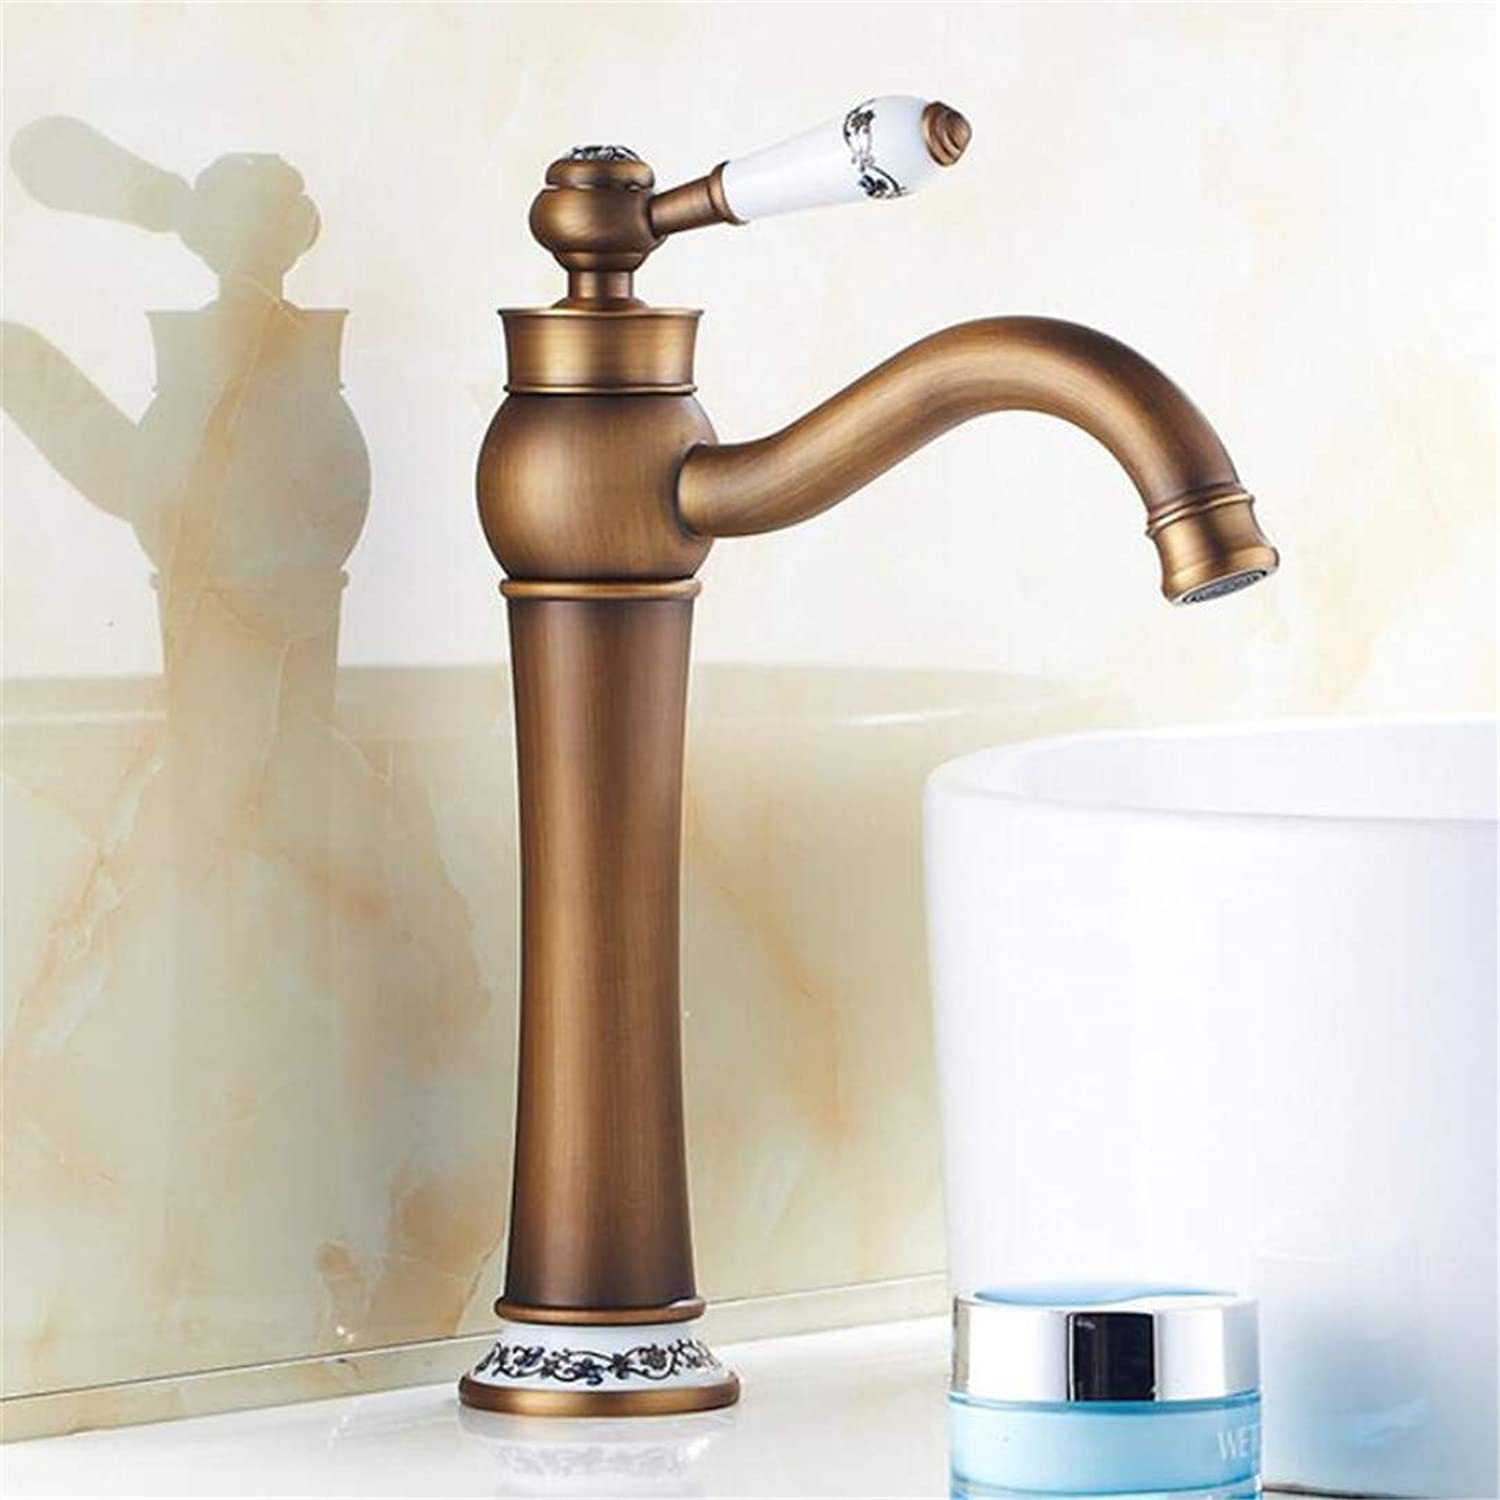 Faucets Basin Mixer Brass Antique Kitchen Faucet Bathroom Basin Faucet bluee and White Porcelain Deck Mounted with 2Pcs Water Hose